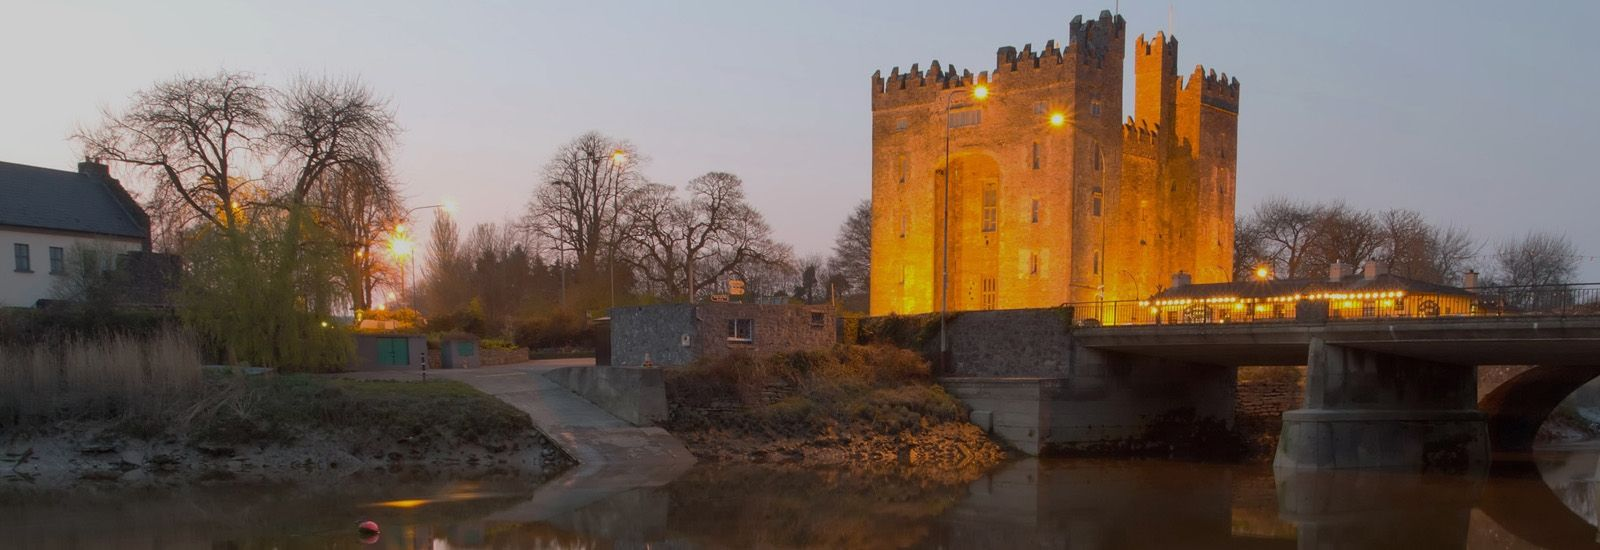 ireland-bunratty-castle-mysterious-adventures-tours-0000